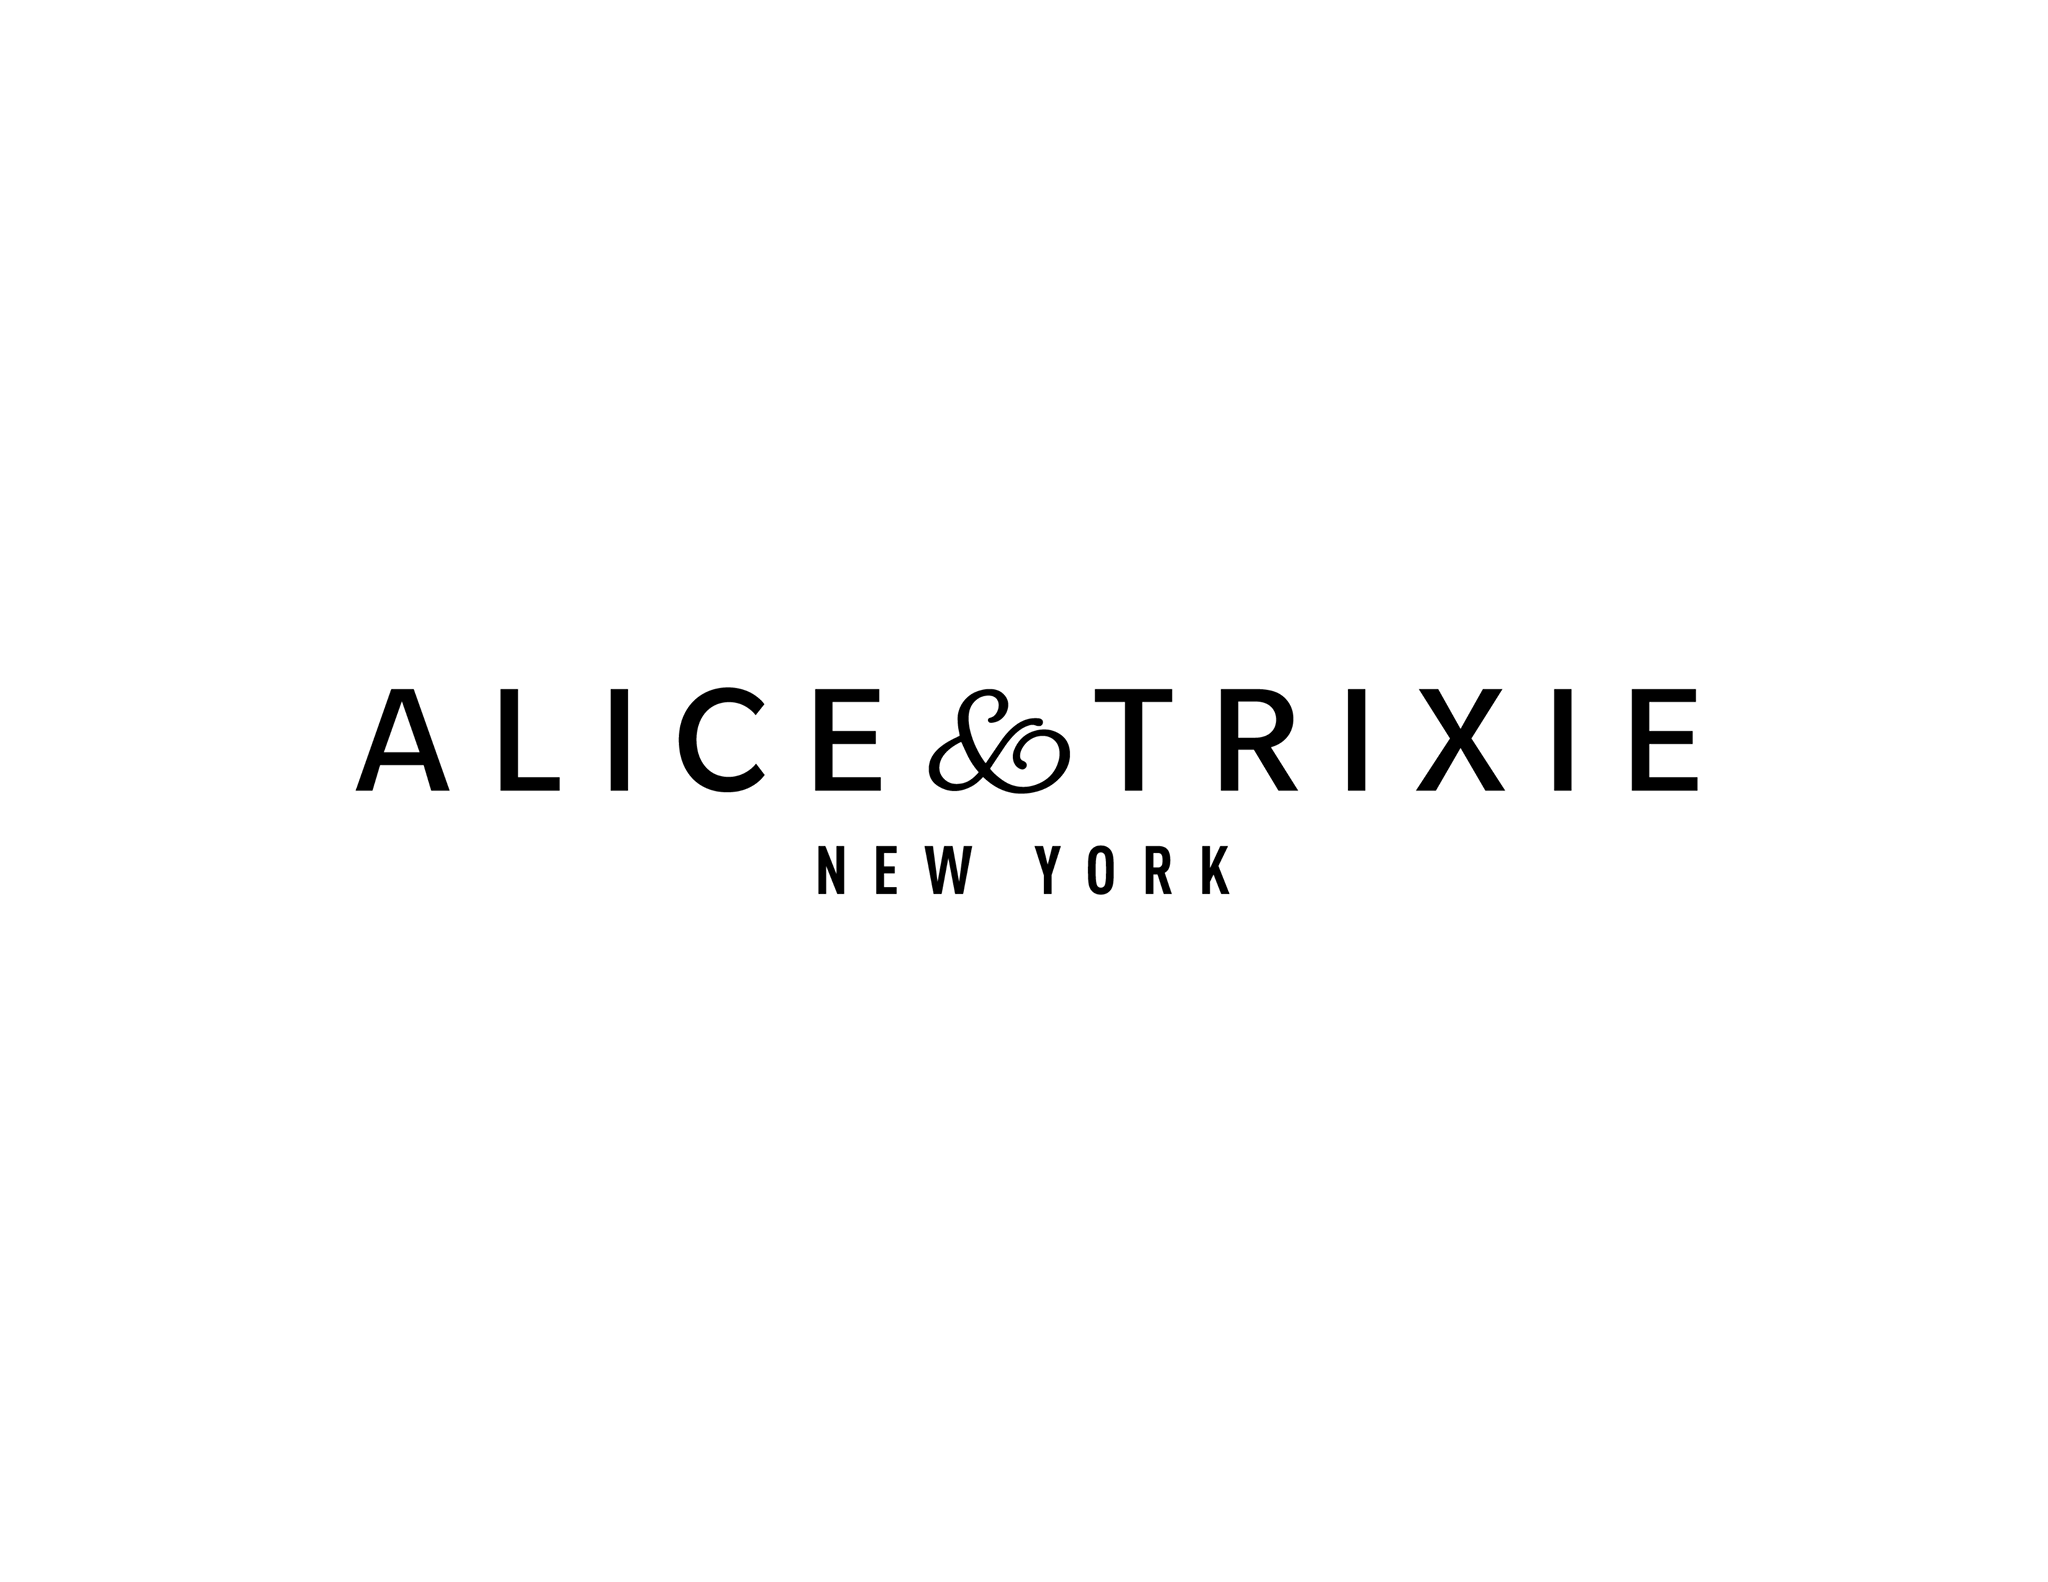 aliceandtrixie